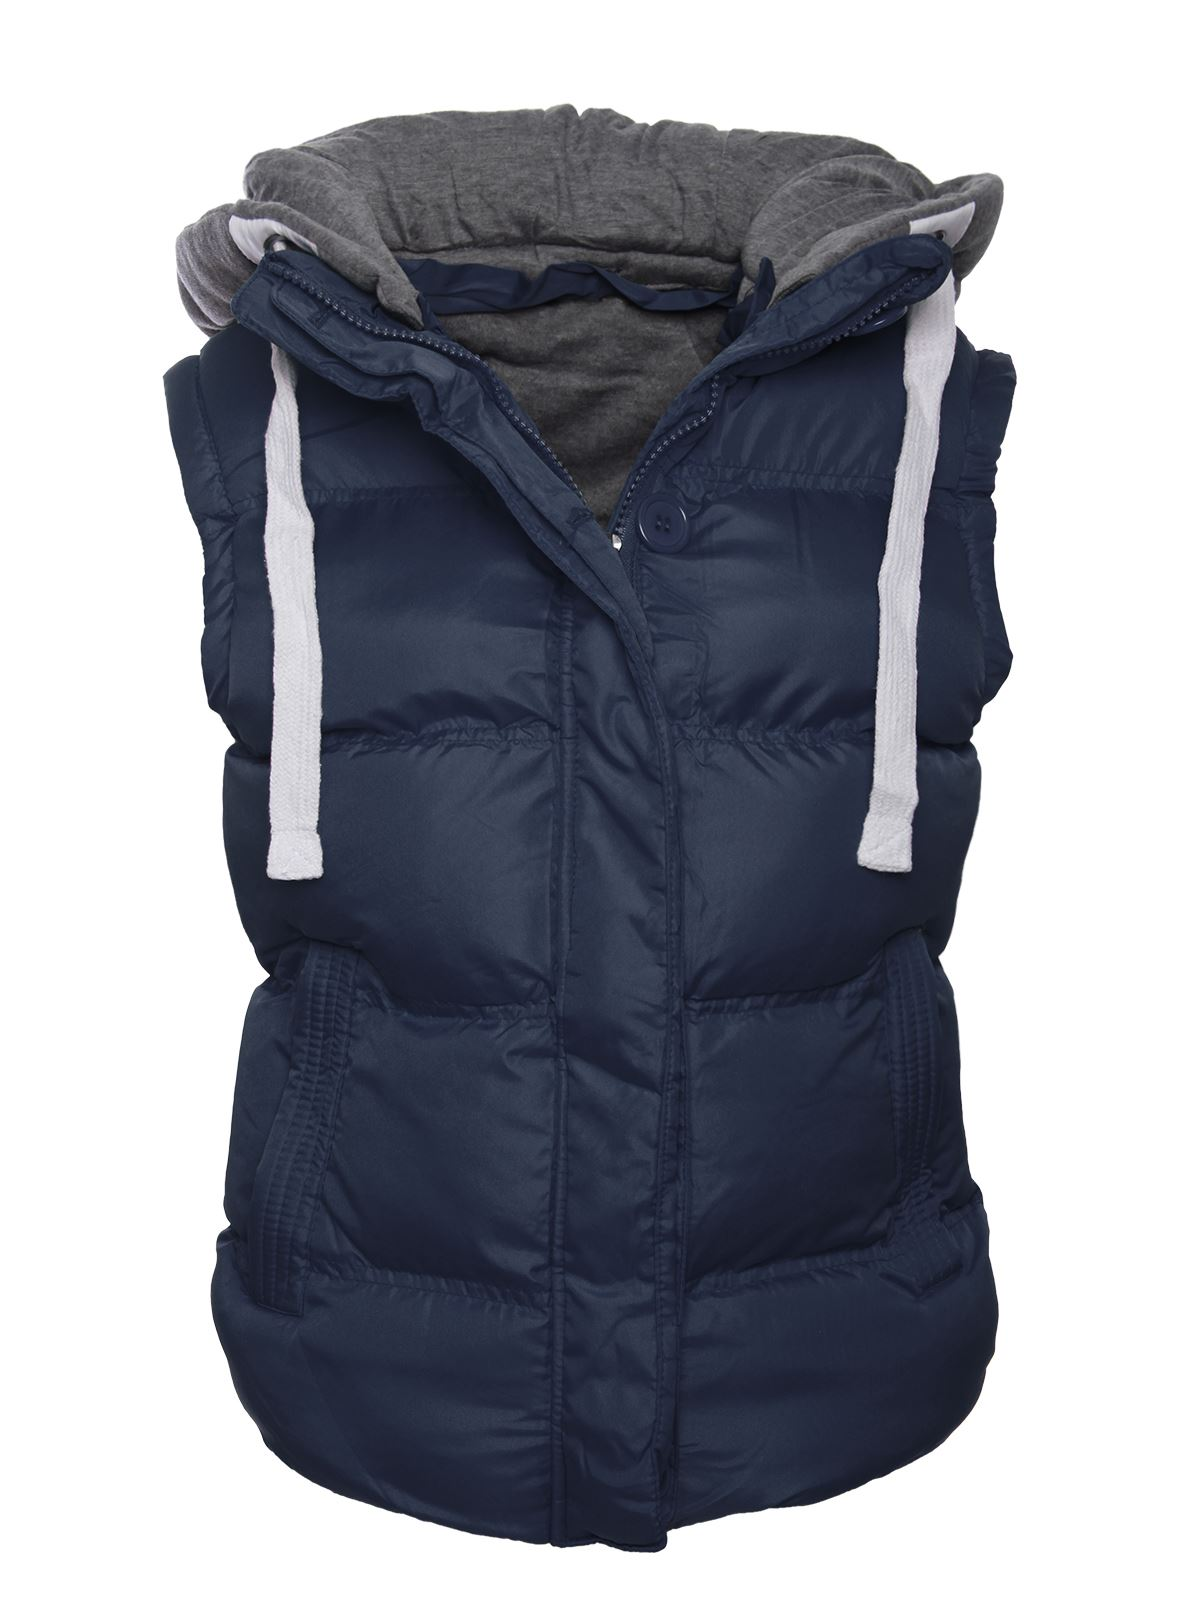 Perfect for keeping the body warm the Fluela Gilet is an outerwear piece perfect from autumn. Padded to keep you insulated, this gilet has a detachable hood with a faux-fur trim for some apres-ski style, plus it has zip pockets to keep your cards and cash extra secure.